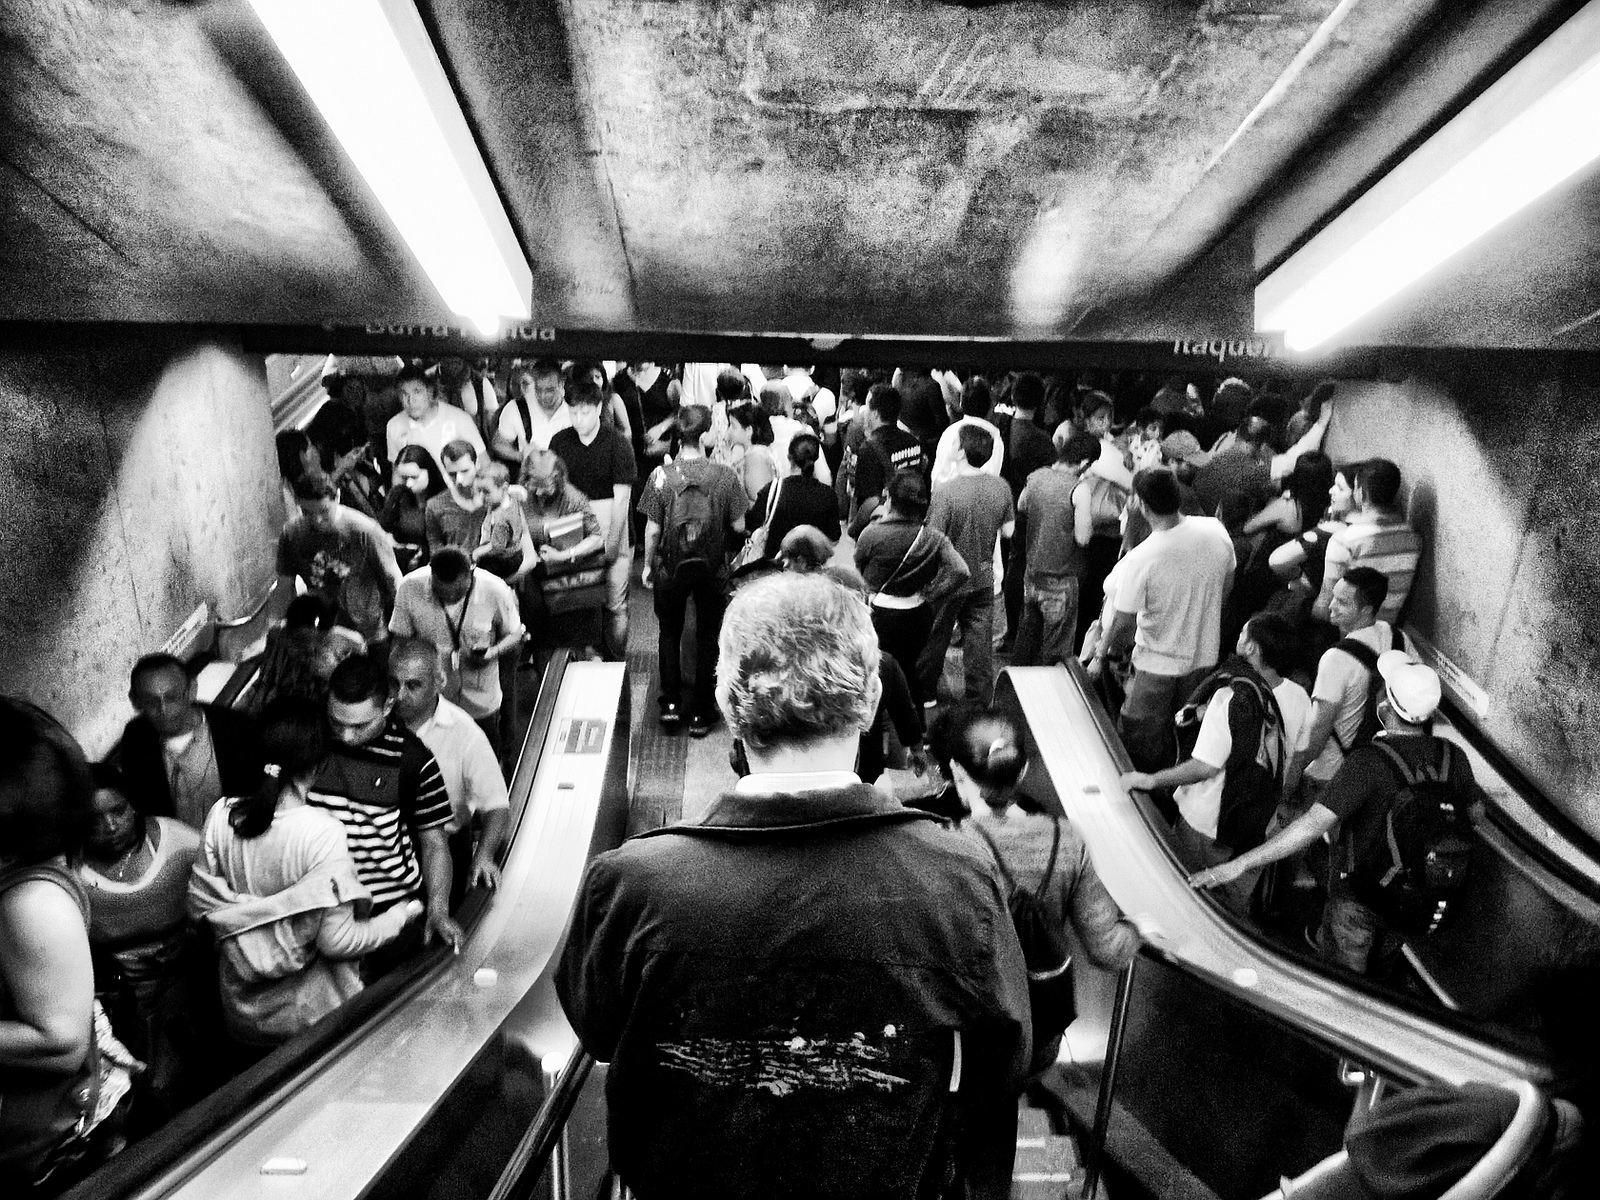 Photo of crowded staircase